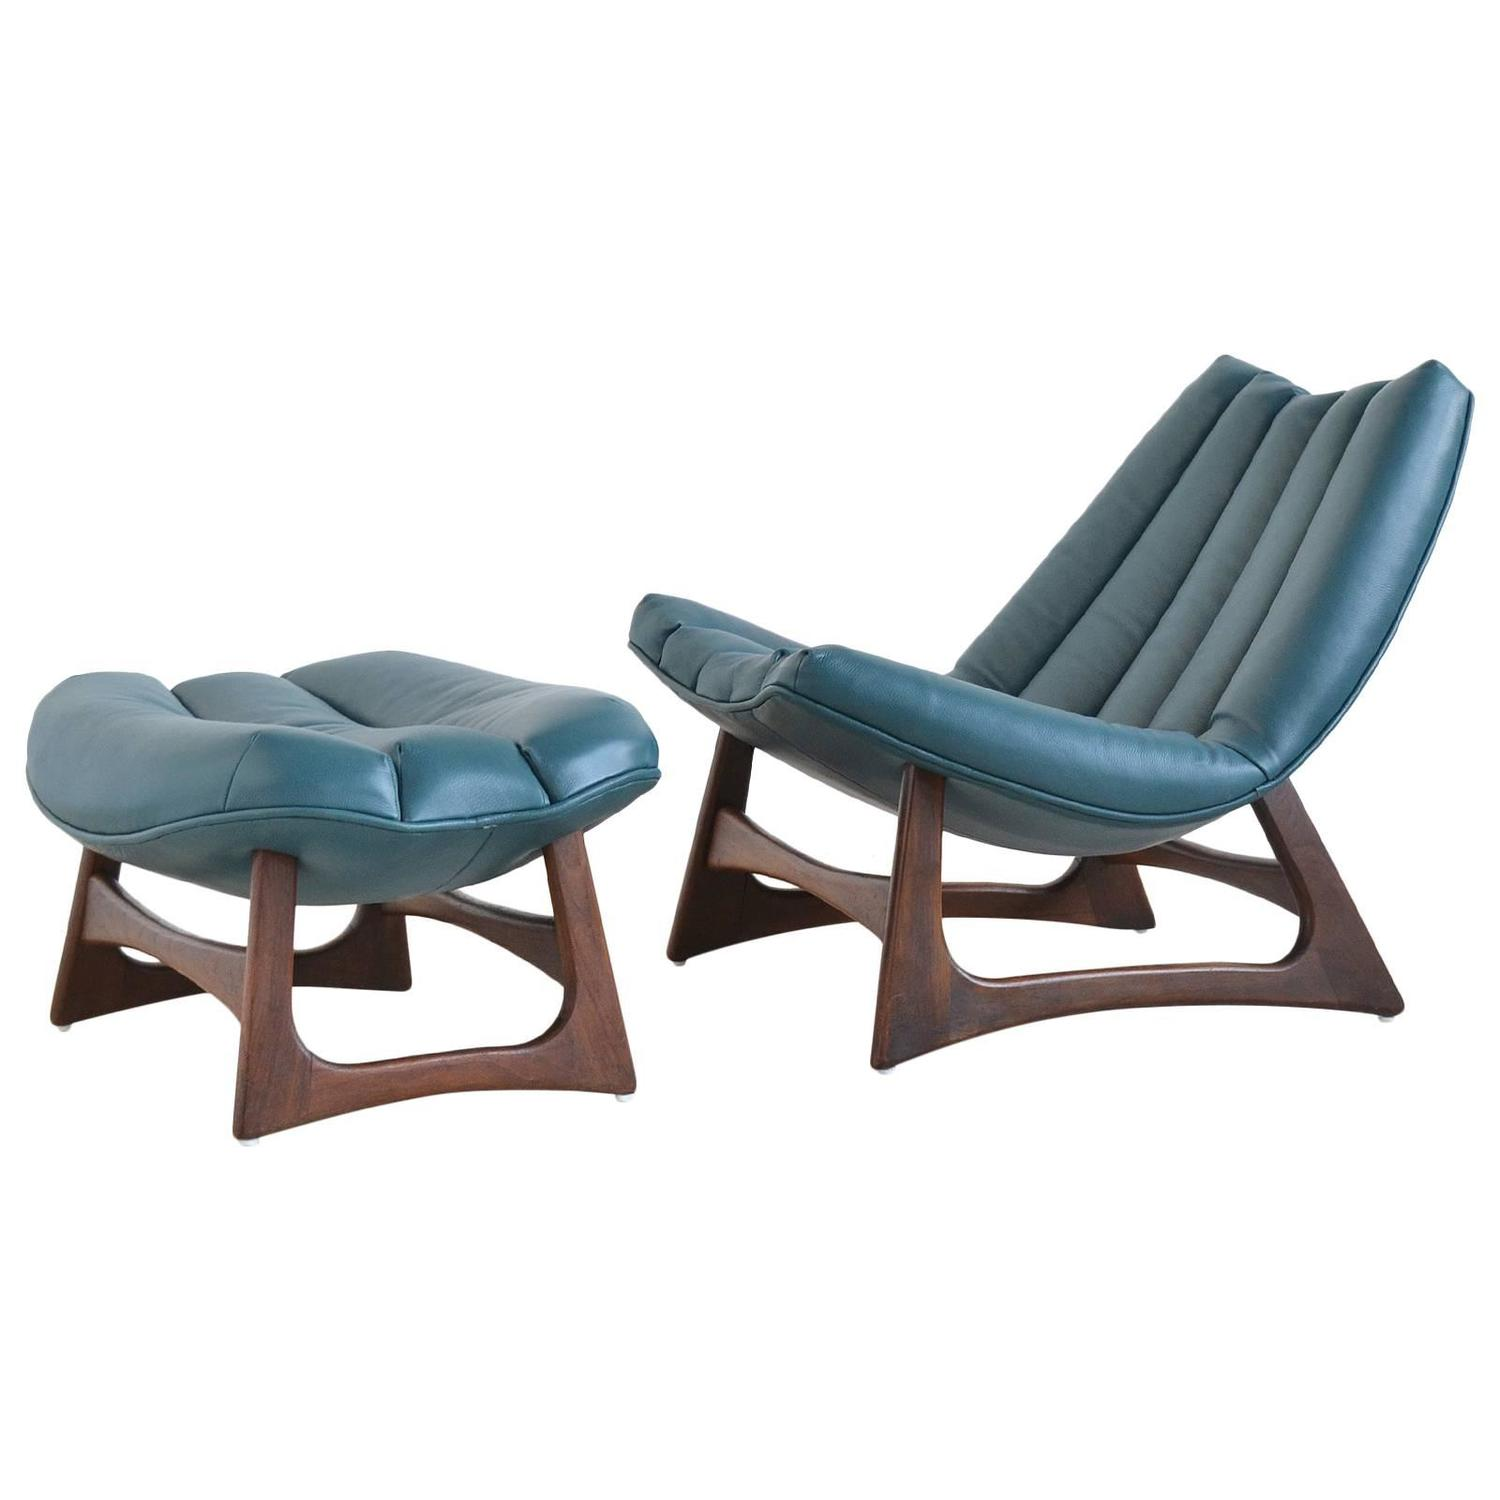 Eero Saarinen Womb Chair And Ottoman In Leather By Knoll At 1stdibs